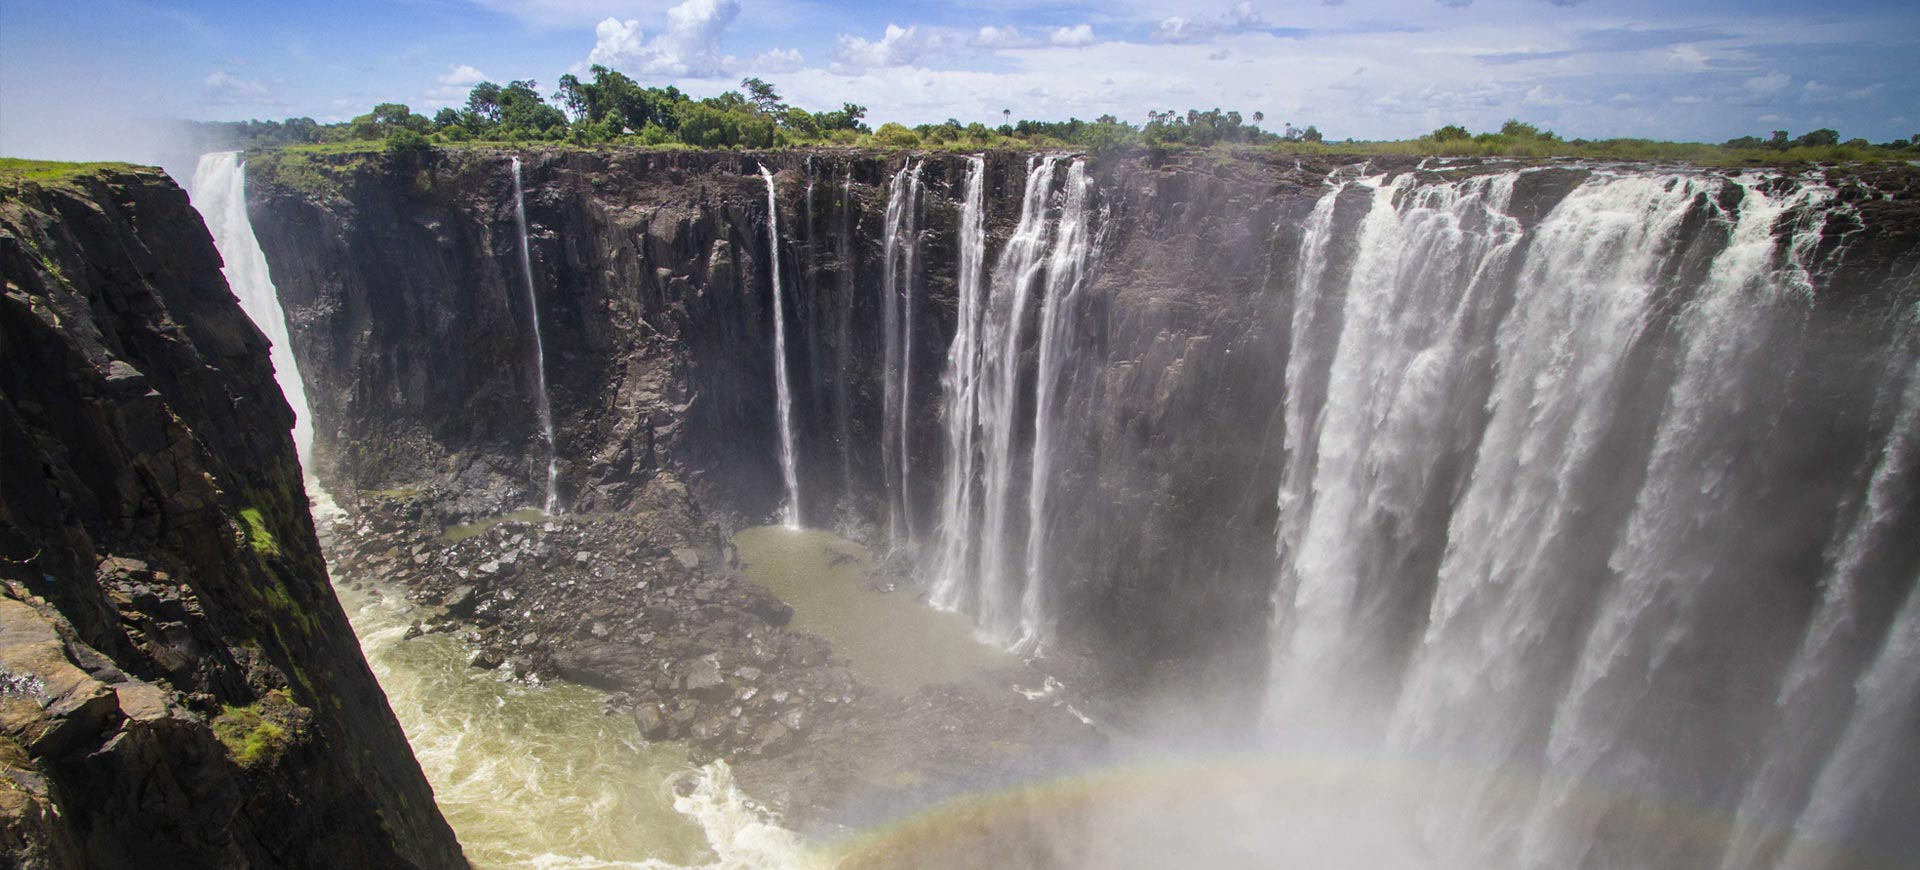 Victoria Falls Waterfall Guided Tour